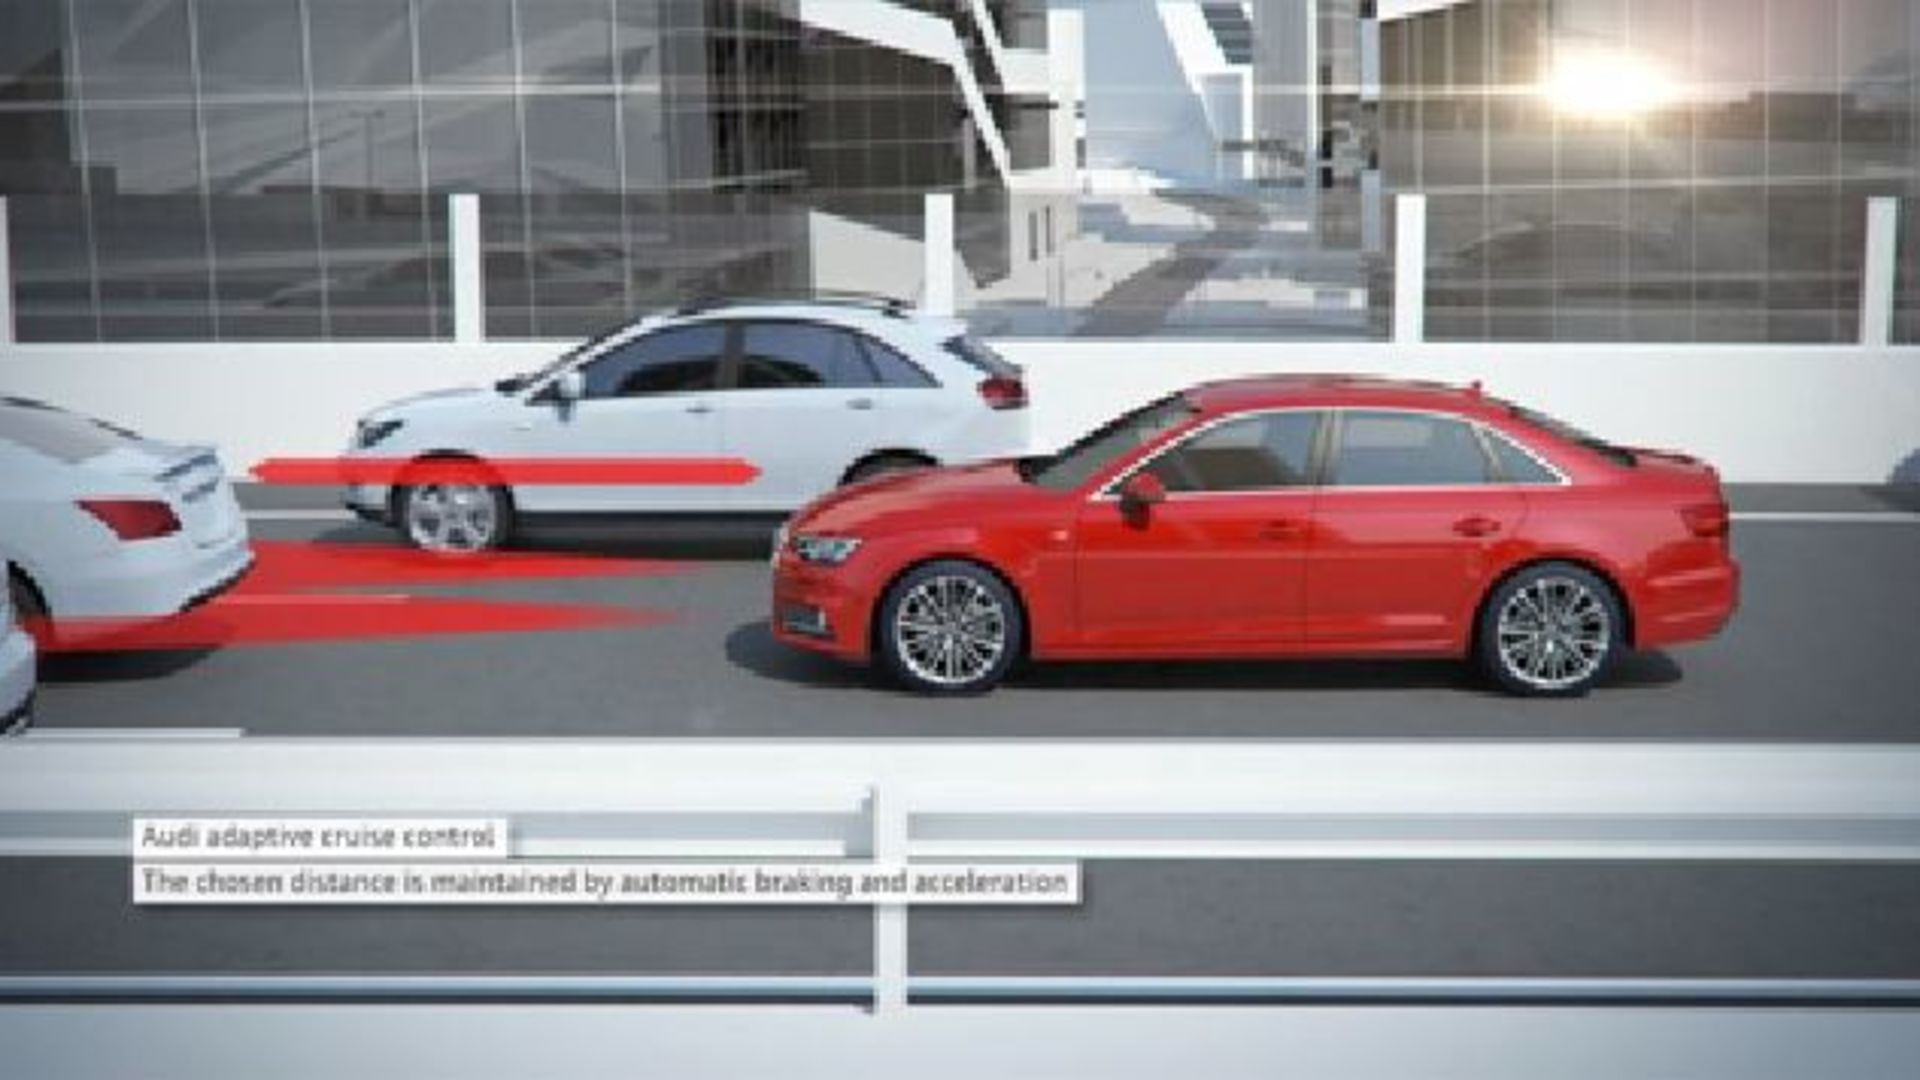 Audi A4 (2015) - Animation traffic jam assistant